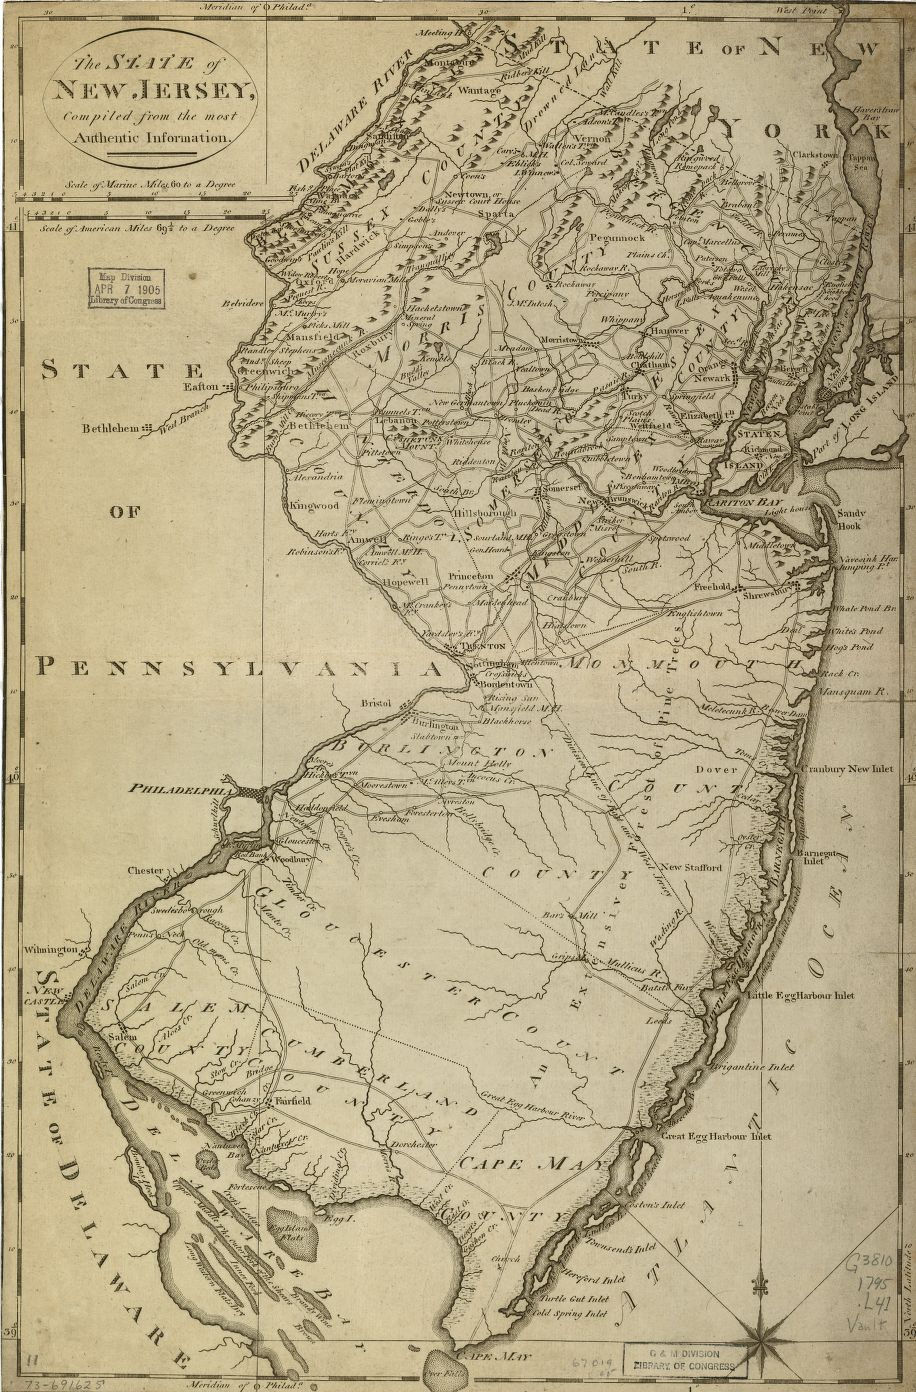 Map of New Jersey (Philadelphia, M. Carey, 1795)